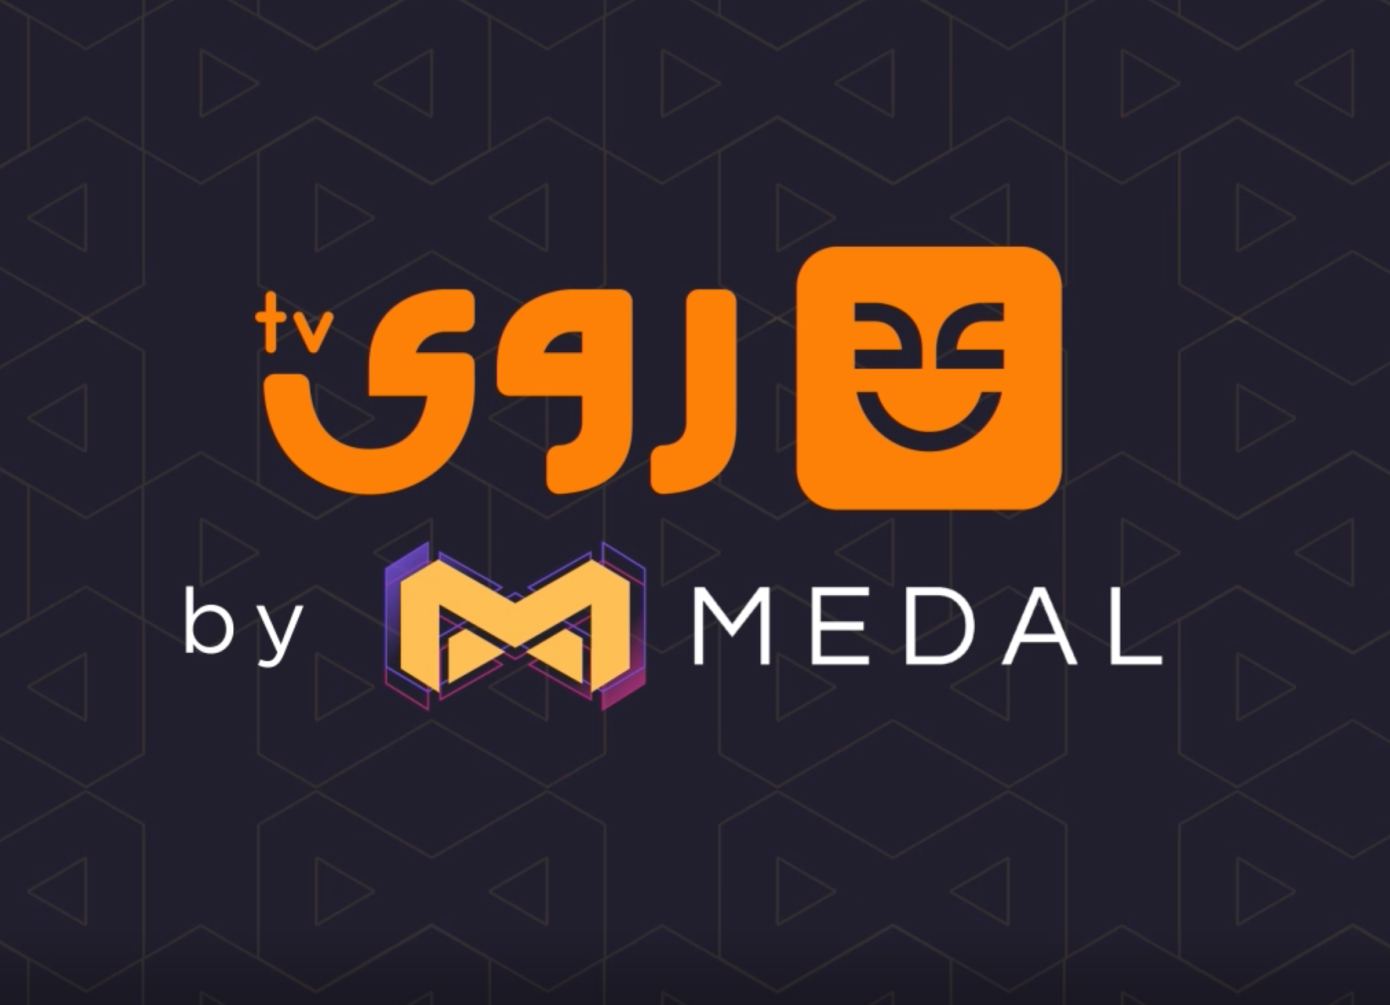 Medal.tv, A Video Clipping Service For Gamers, Enters The Livestreaming Market With Rawa.tv Acquisition